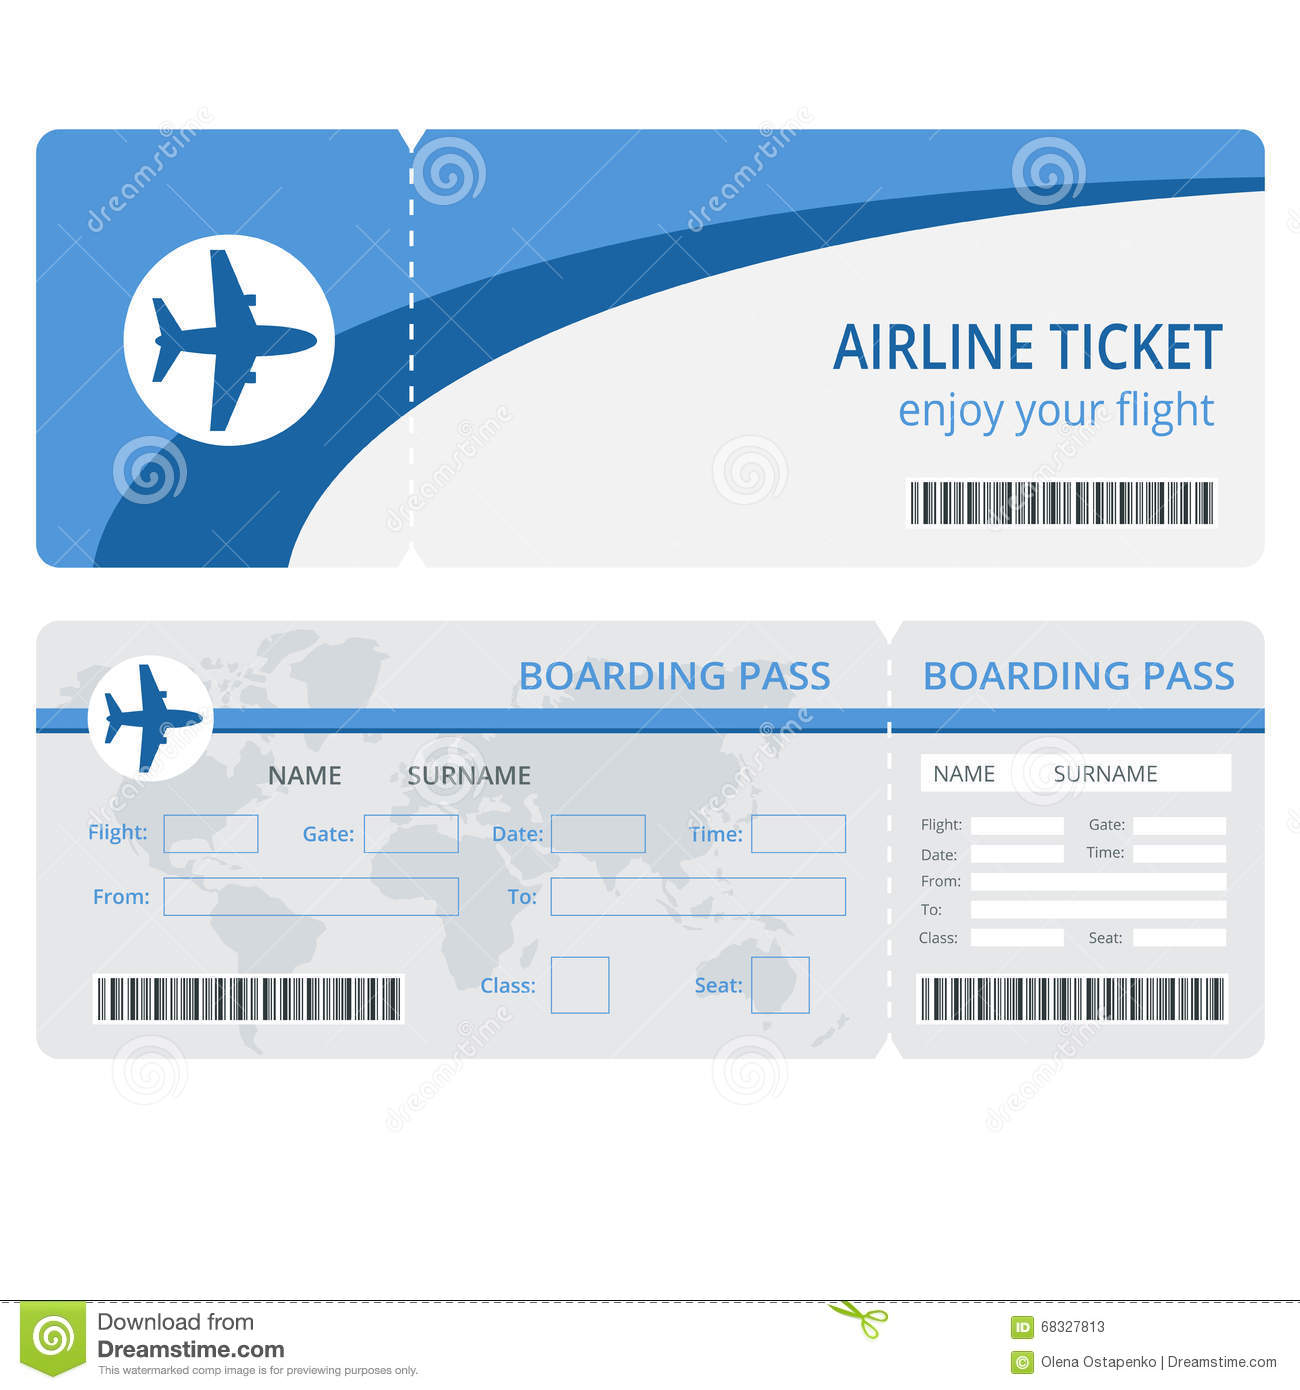 HttpsThumbsDreamstimeComZPlaneTicketDesignPlaneTicket